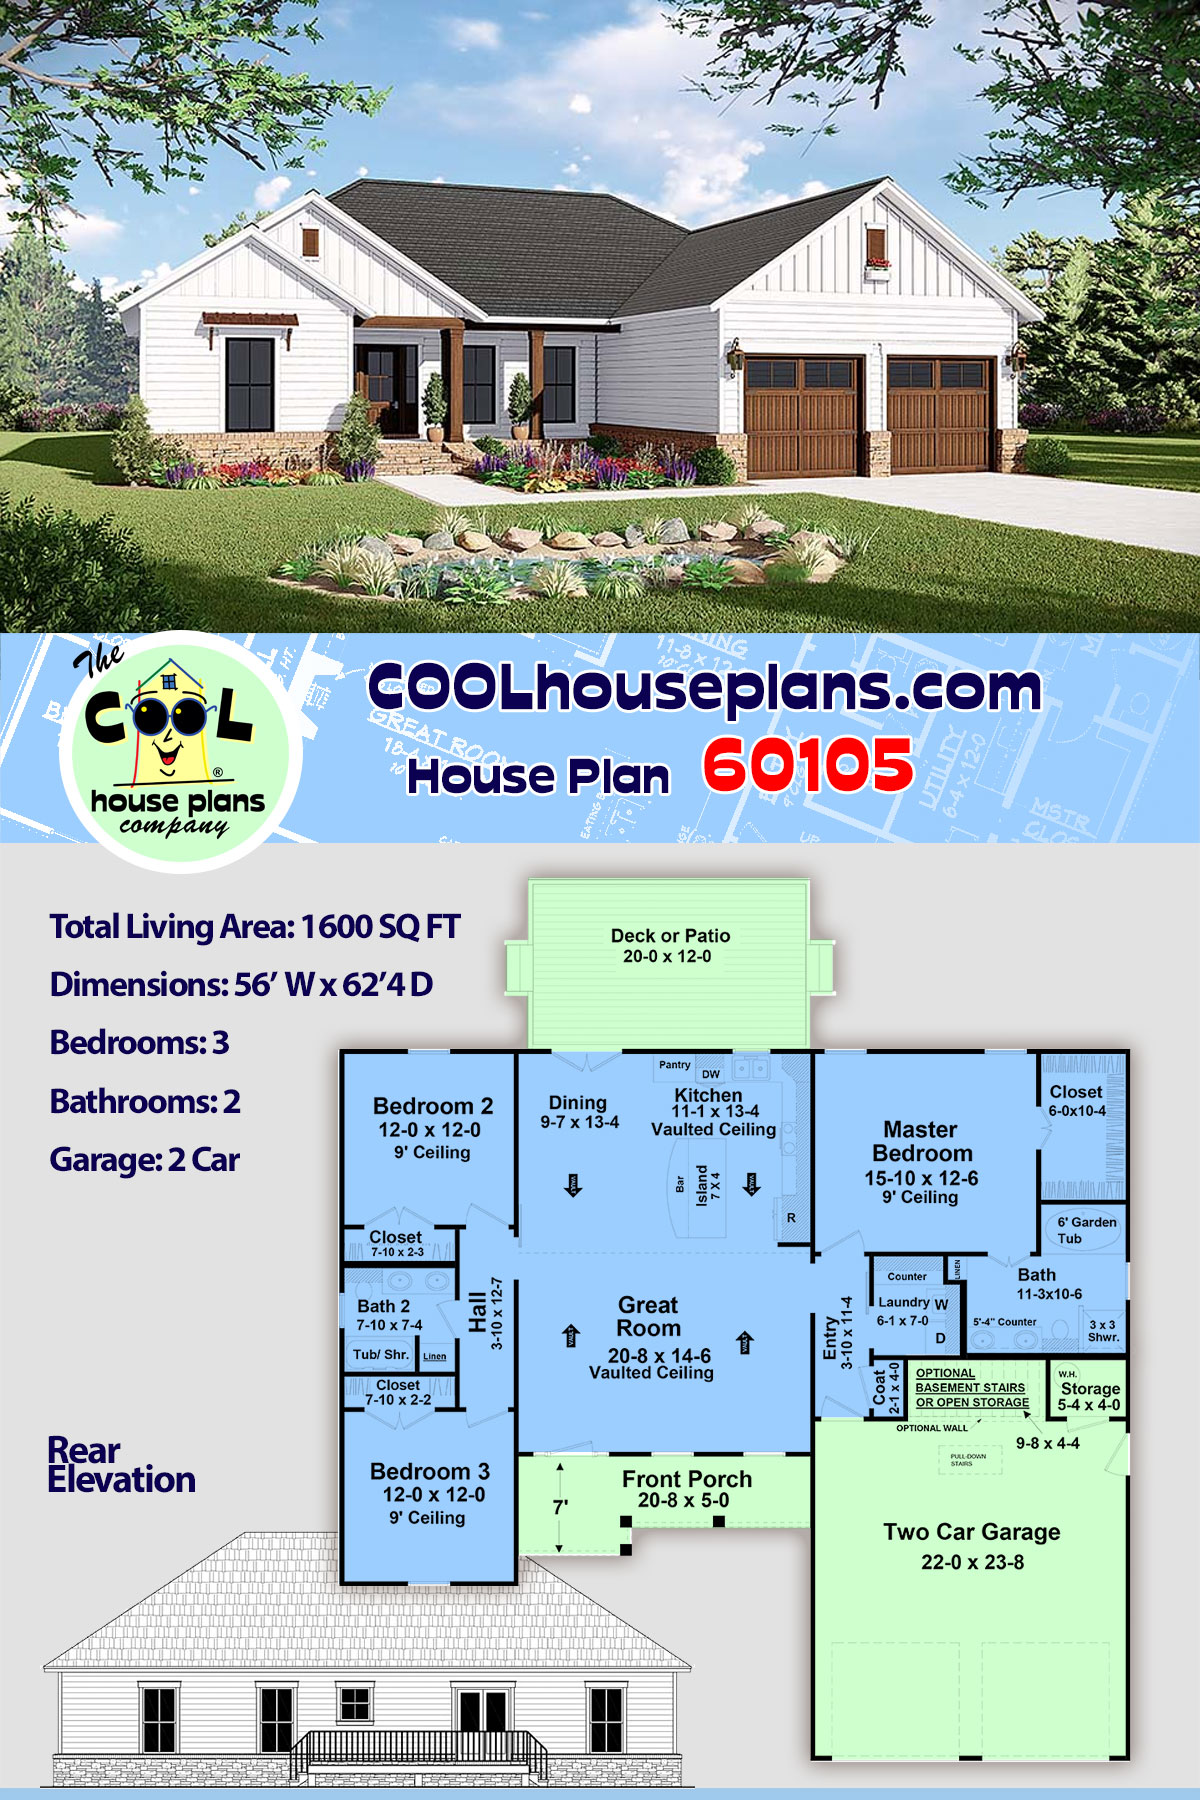 Country, Farmhouse, Ranch, Traditional House Plan 60105 with 3 Beds, 2 Baths, 2 Car Garage